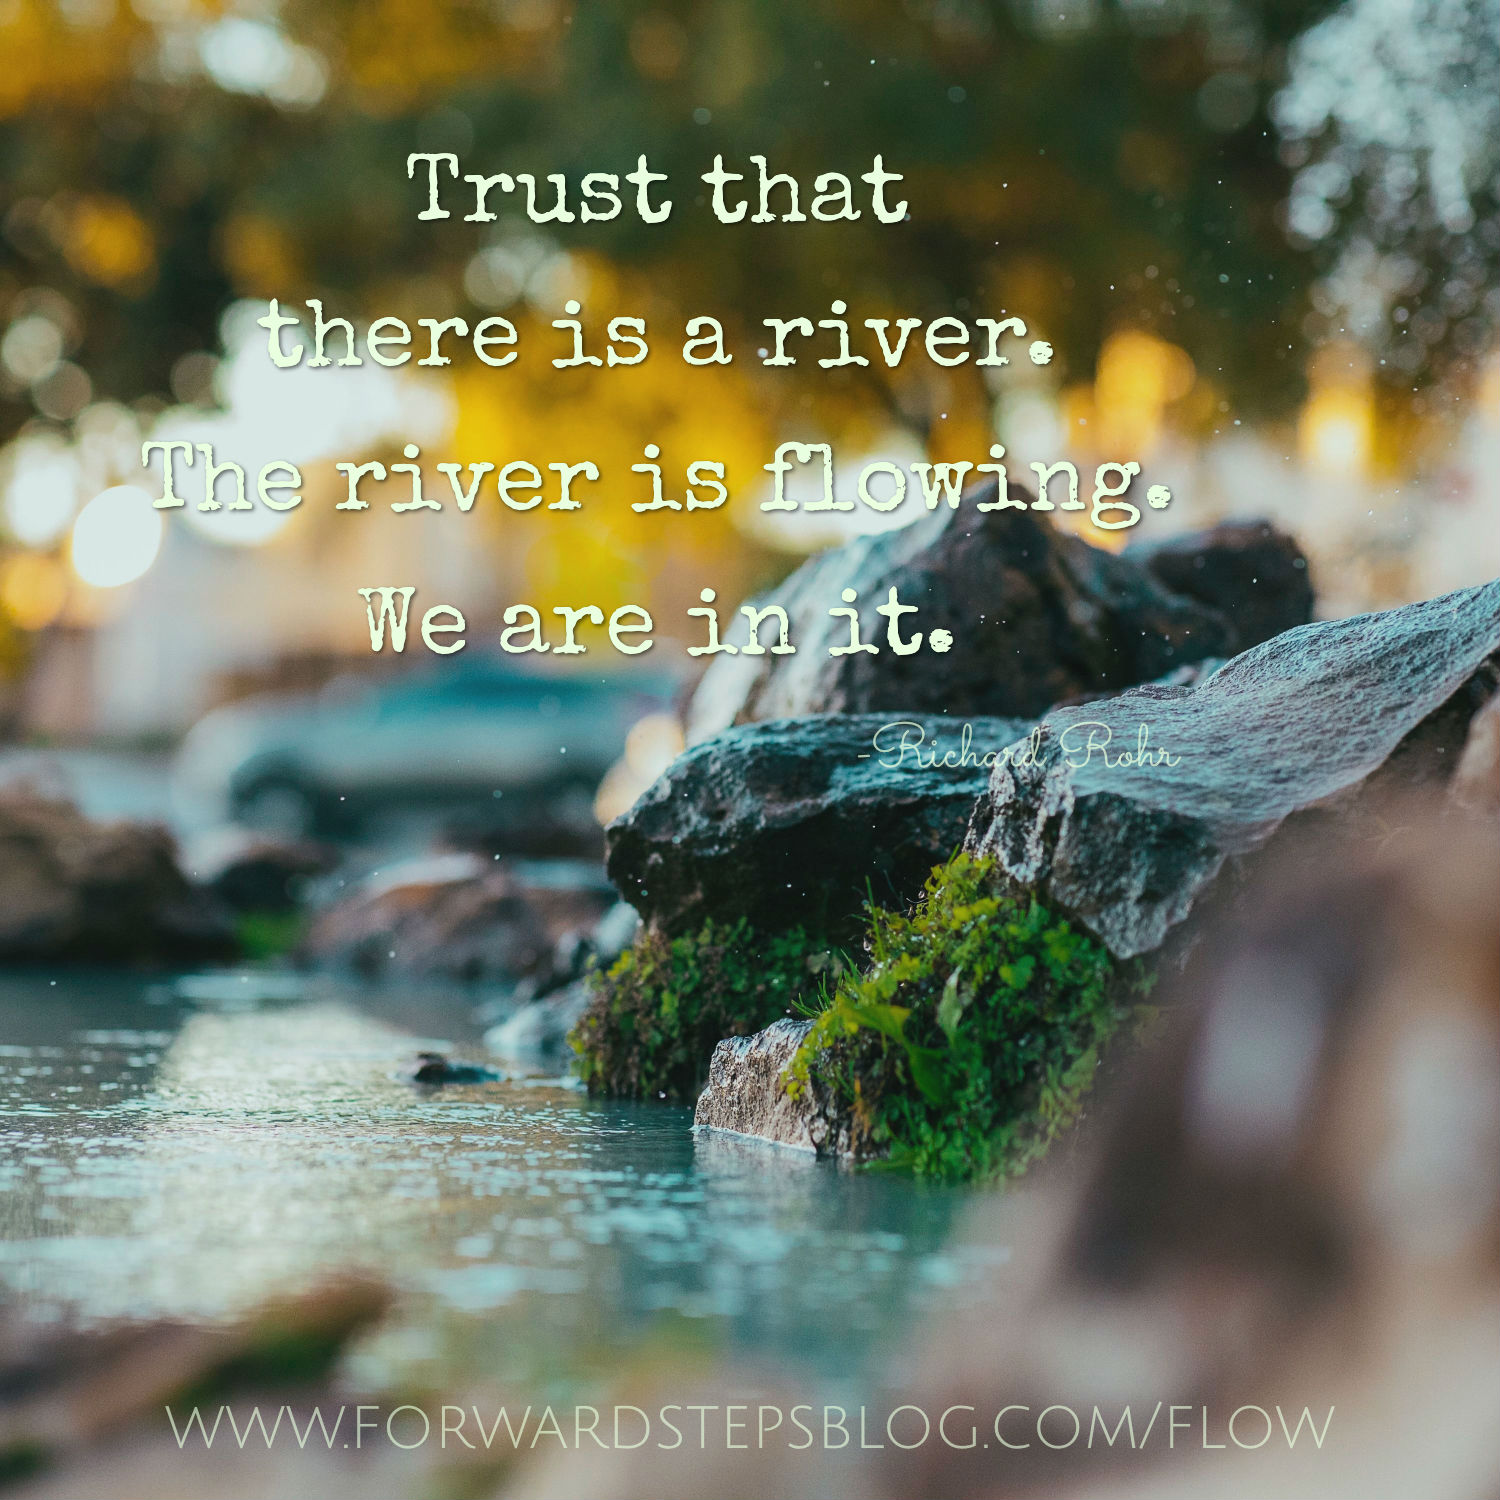 Trust there is a river - Forward Steps image_2